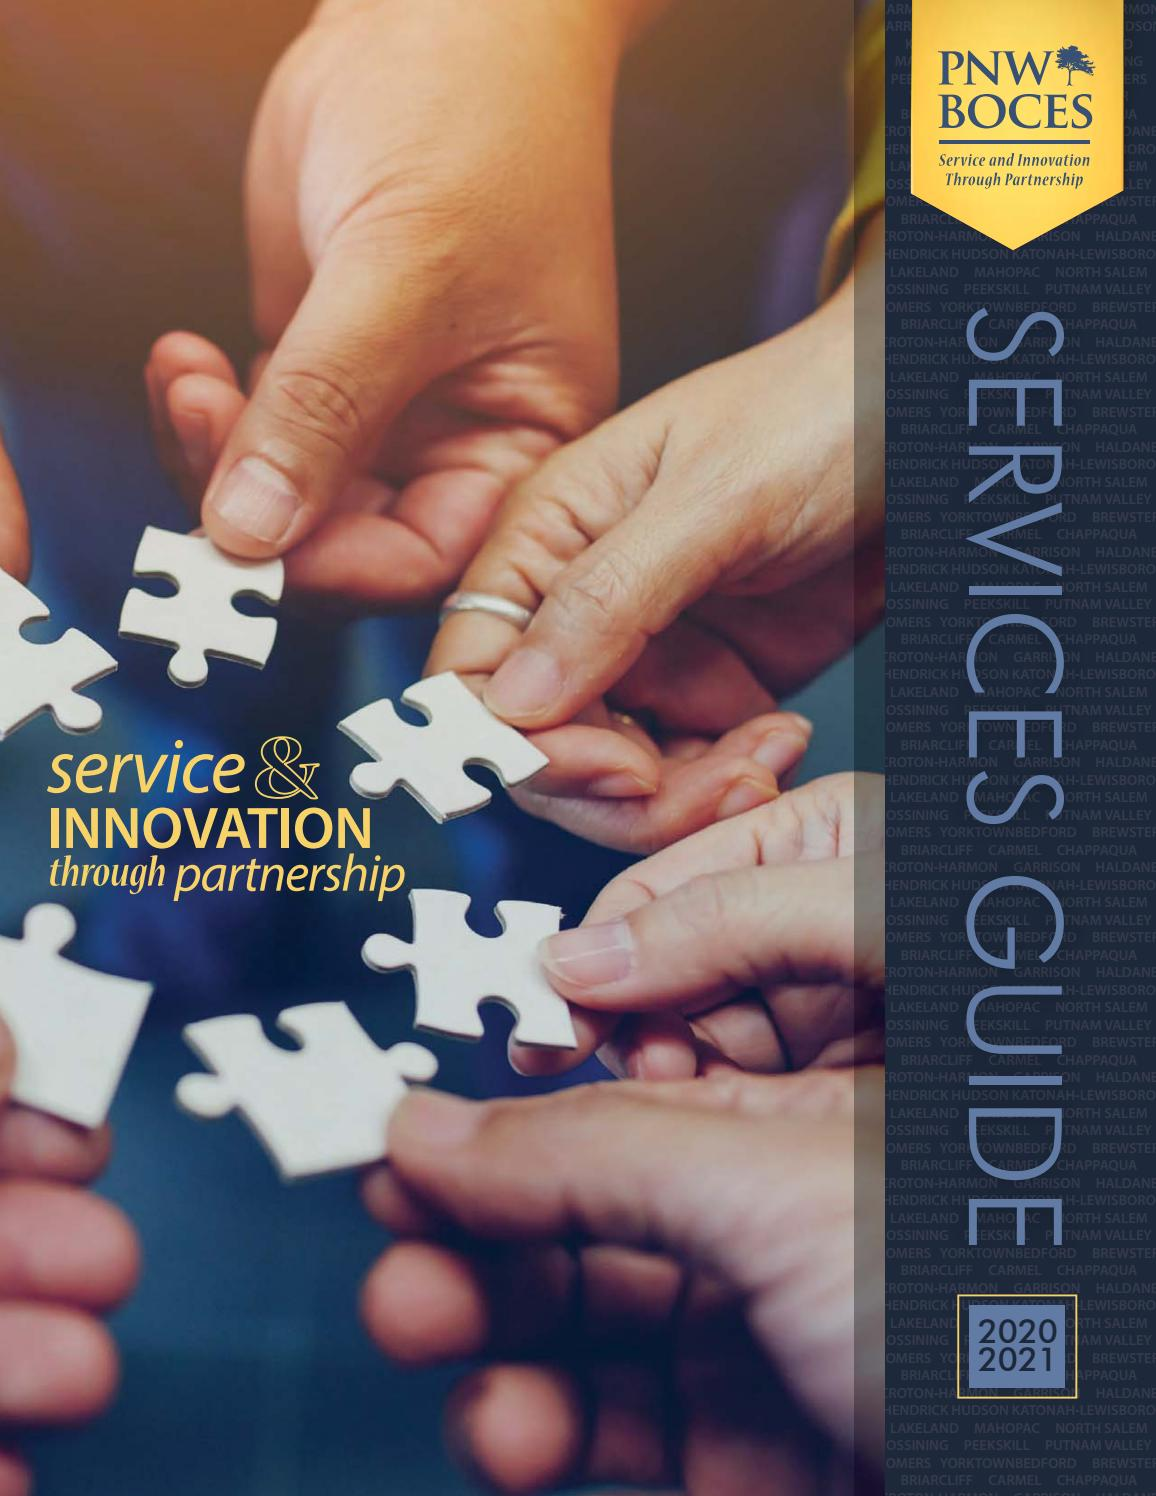 PNW BOCES 2020 2021 Services Guide By PNW BOCES Issuu